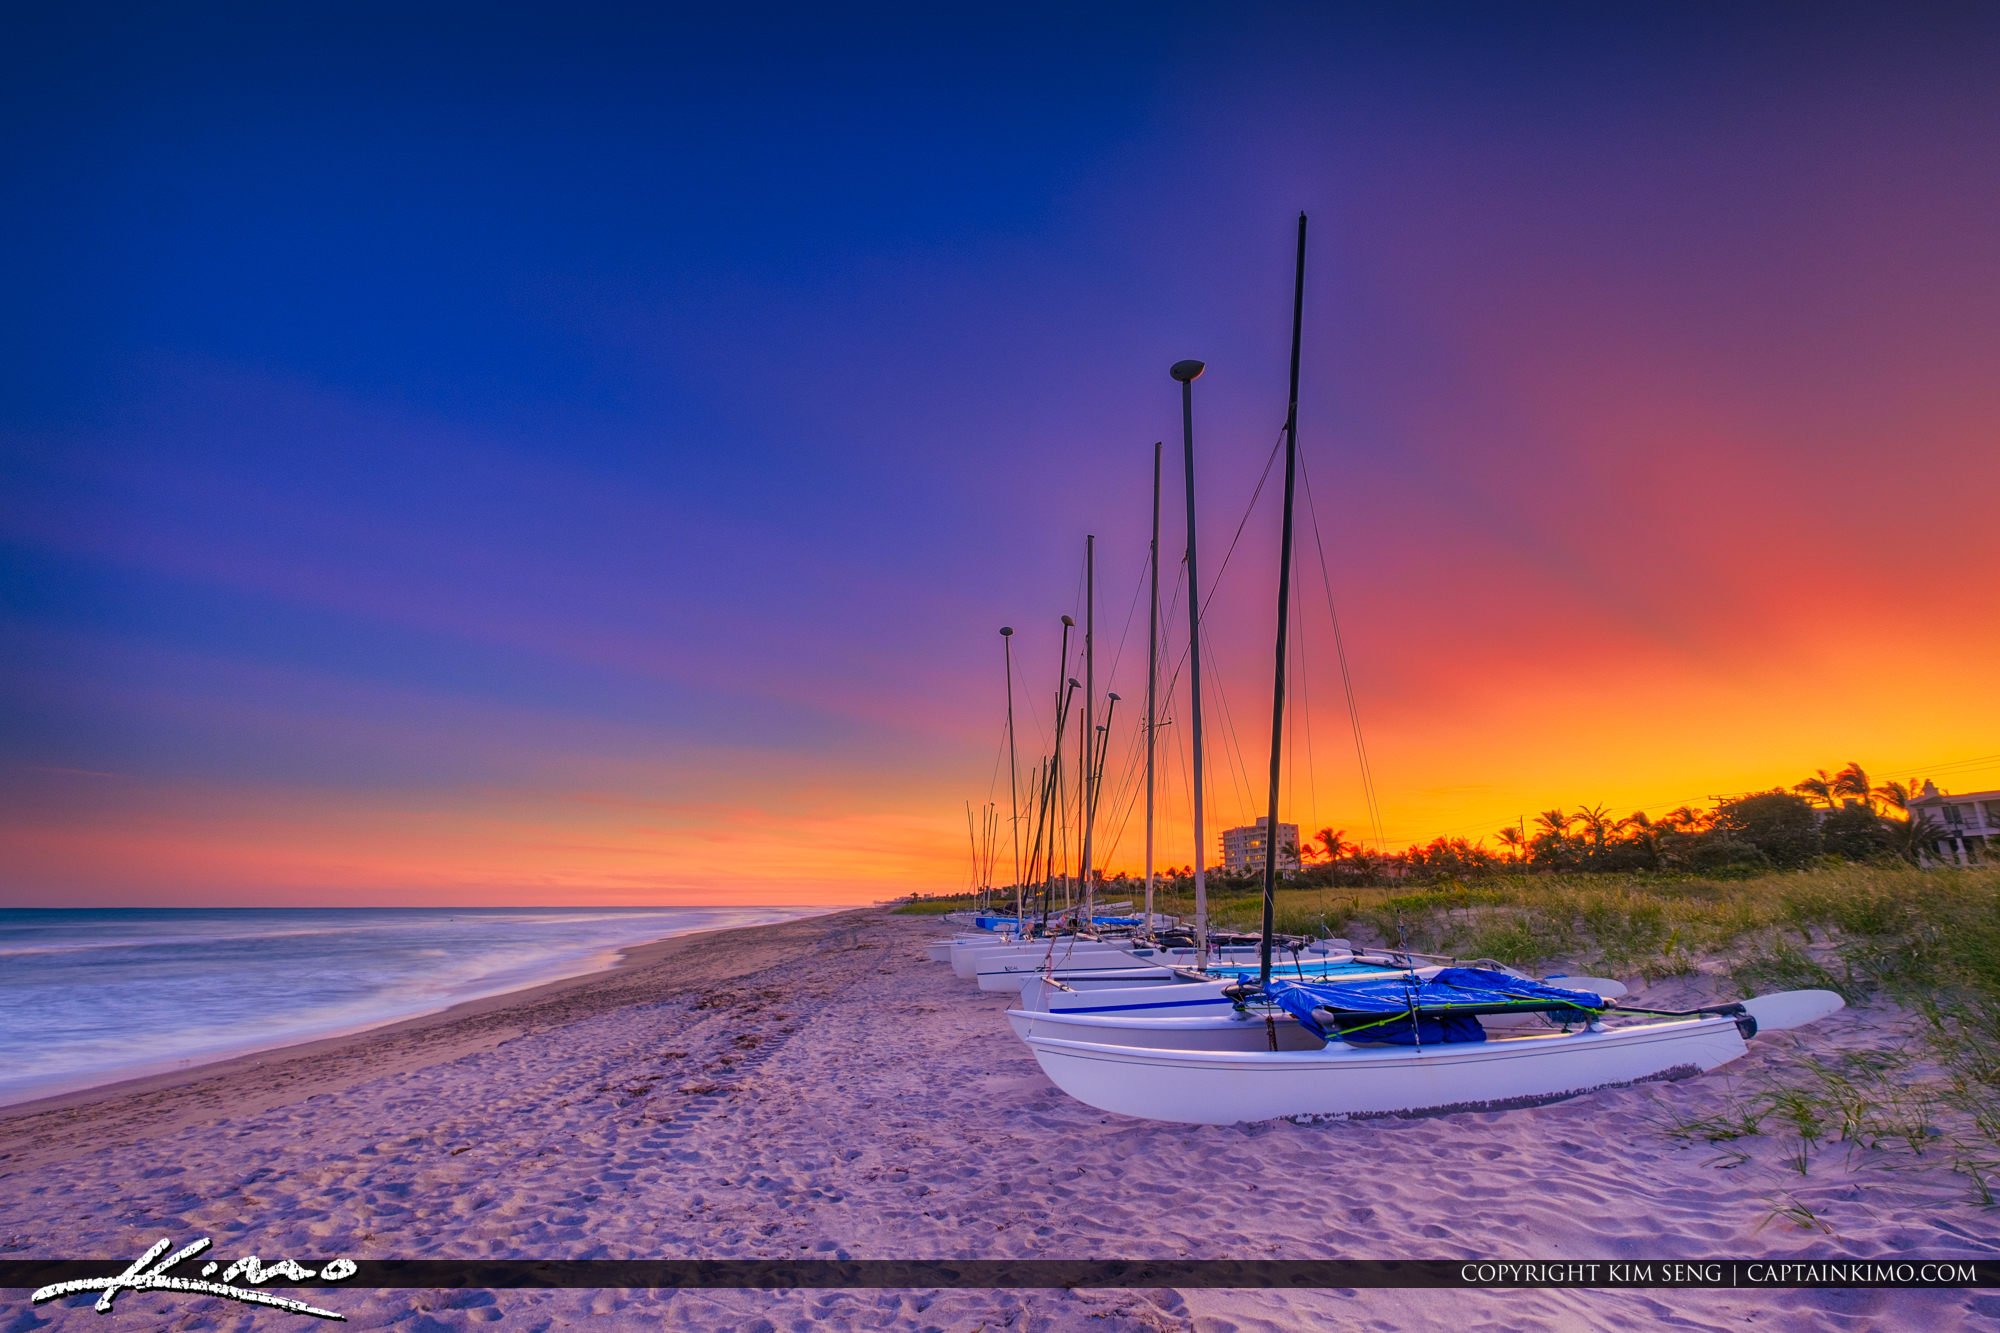 Delray Beach Florida Sunset From Beach with Sailboats